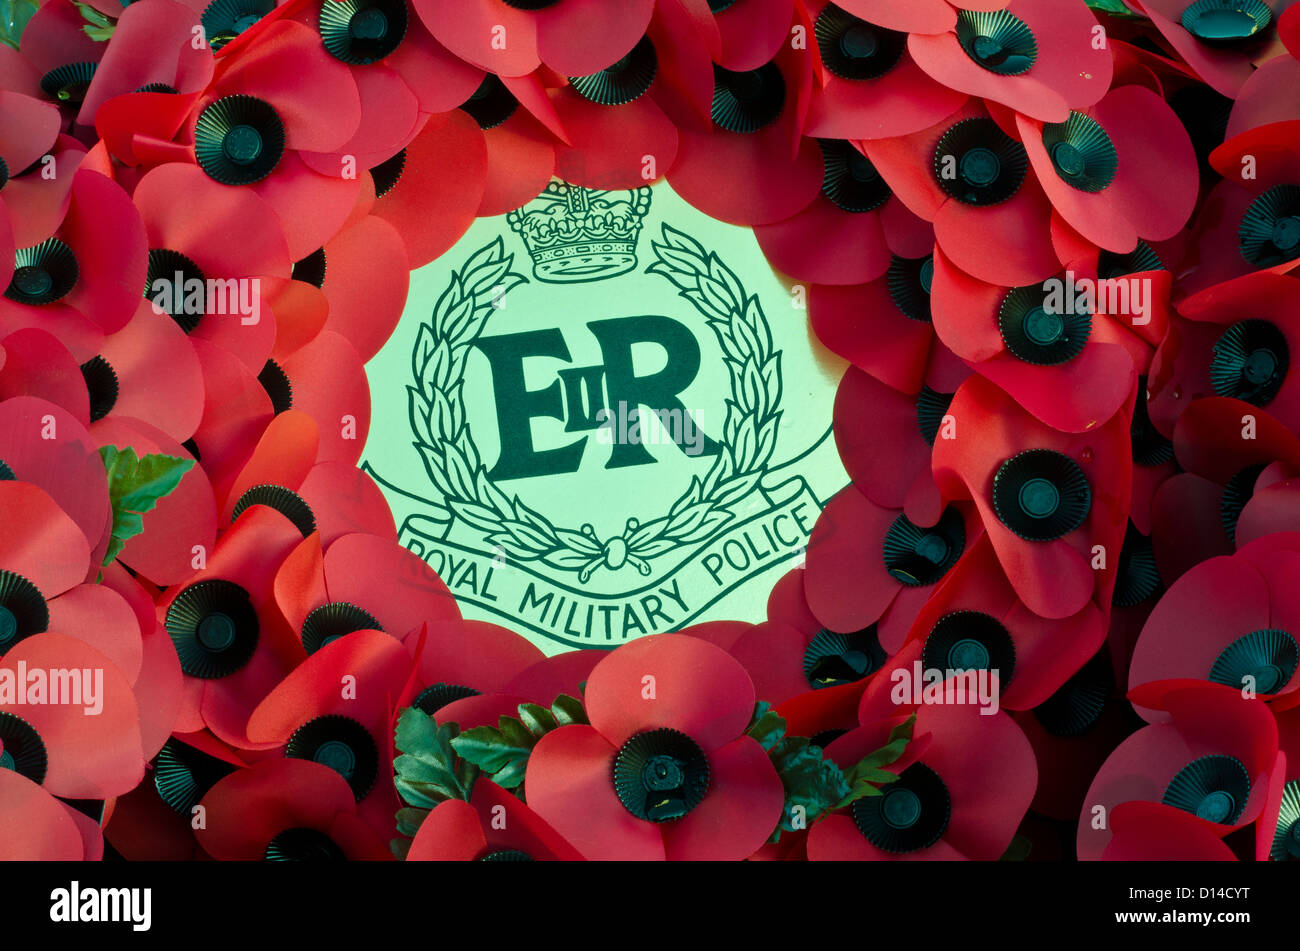 Wreath of poppy,s from the Royal military police [on remembrance day] - Stock Image